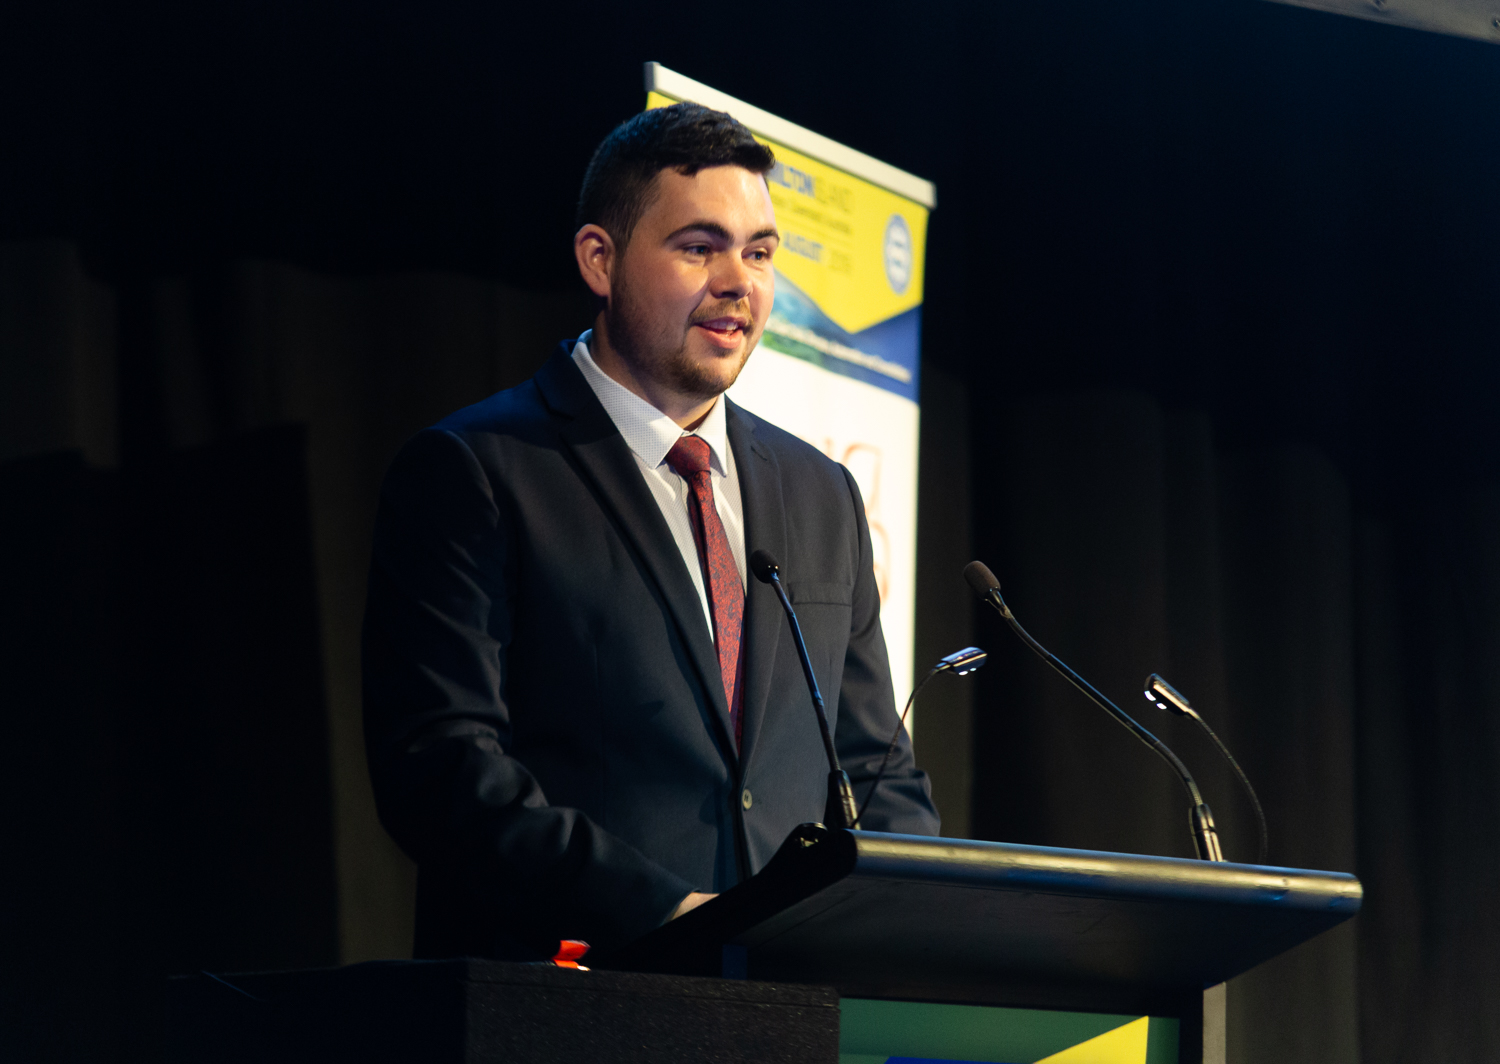 1908280019 RWTA Conferencing Session Highlights.jpg